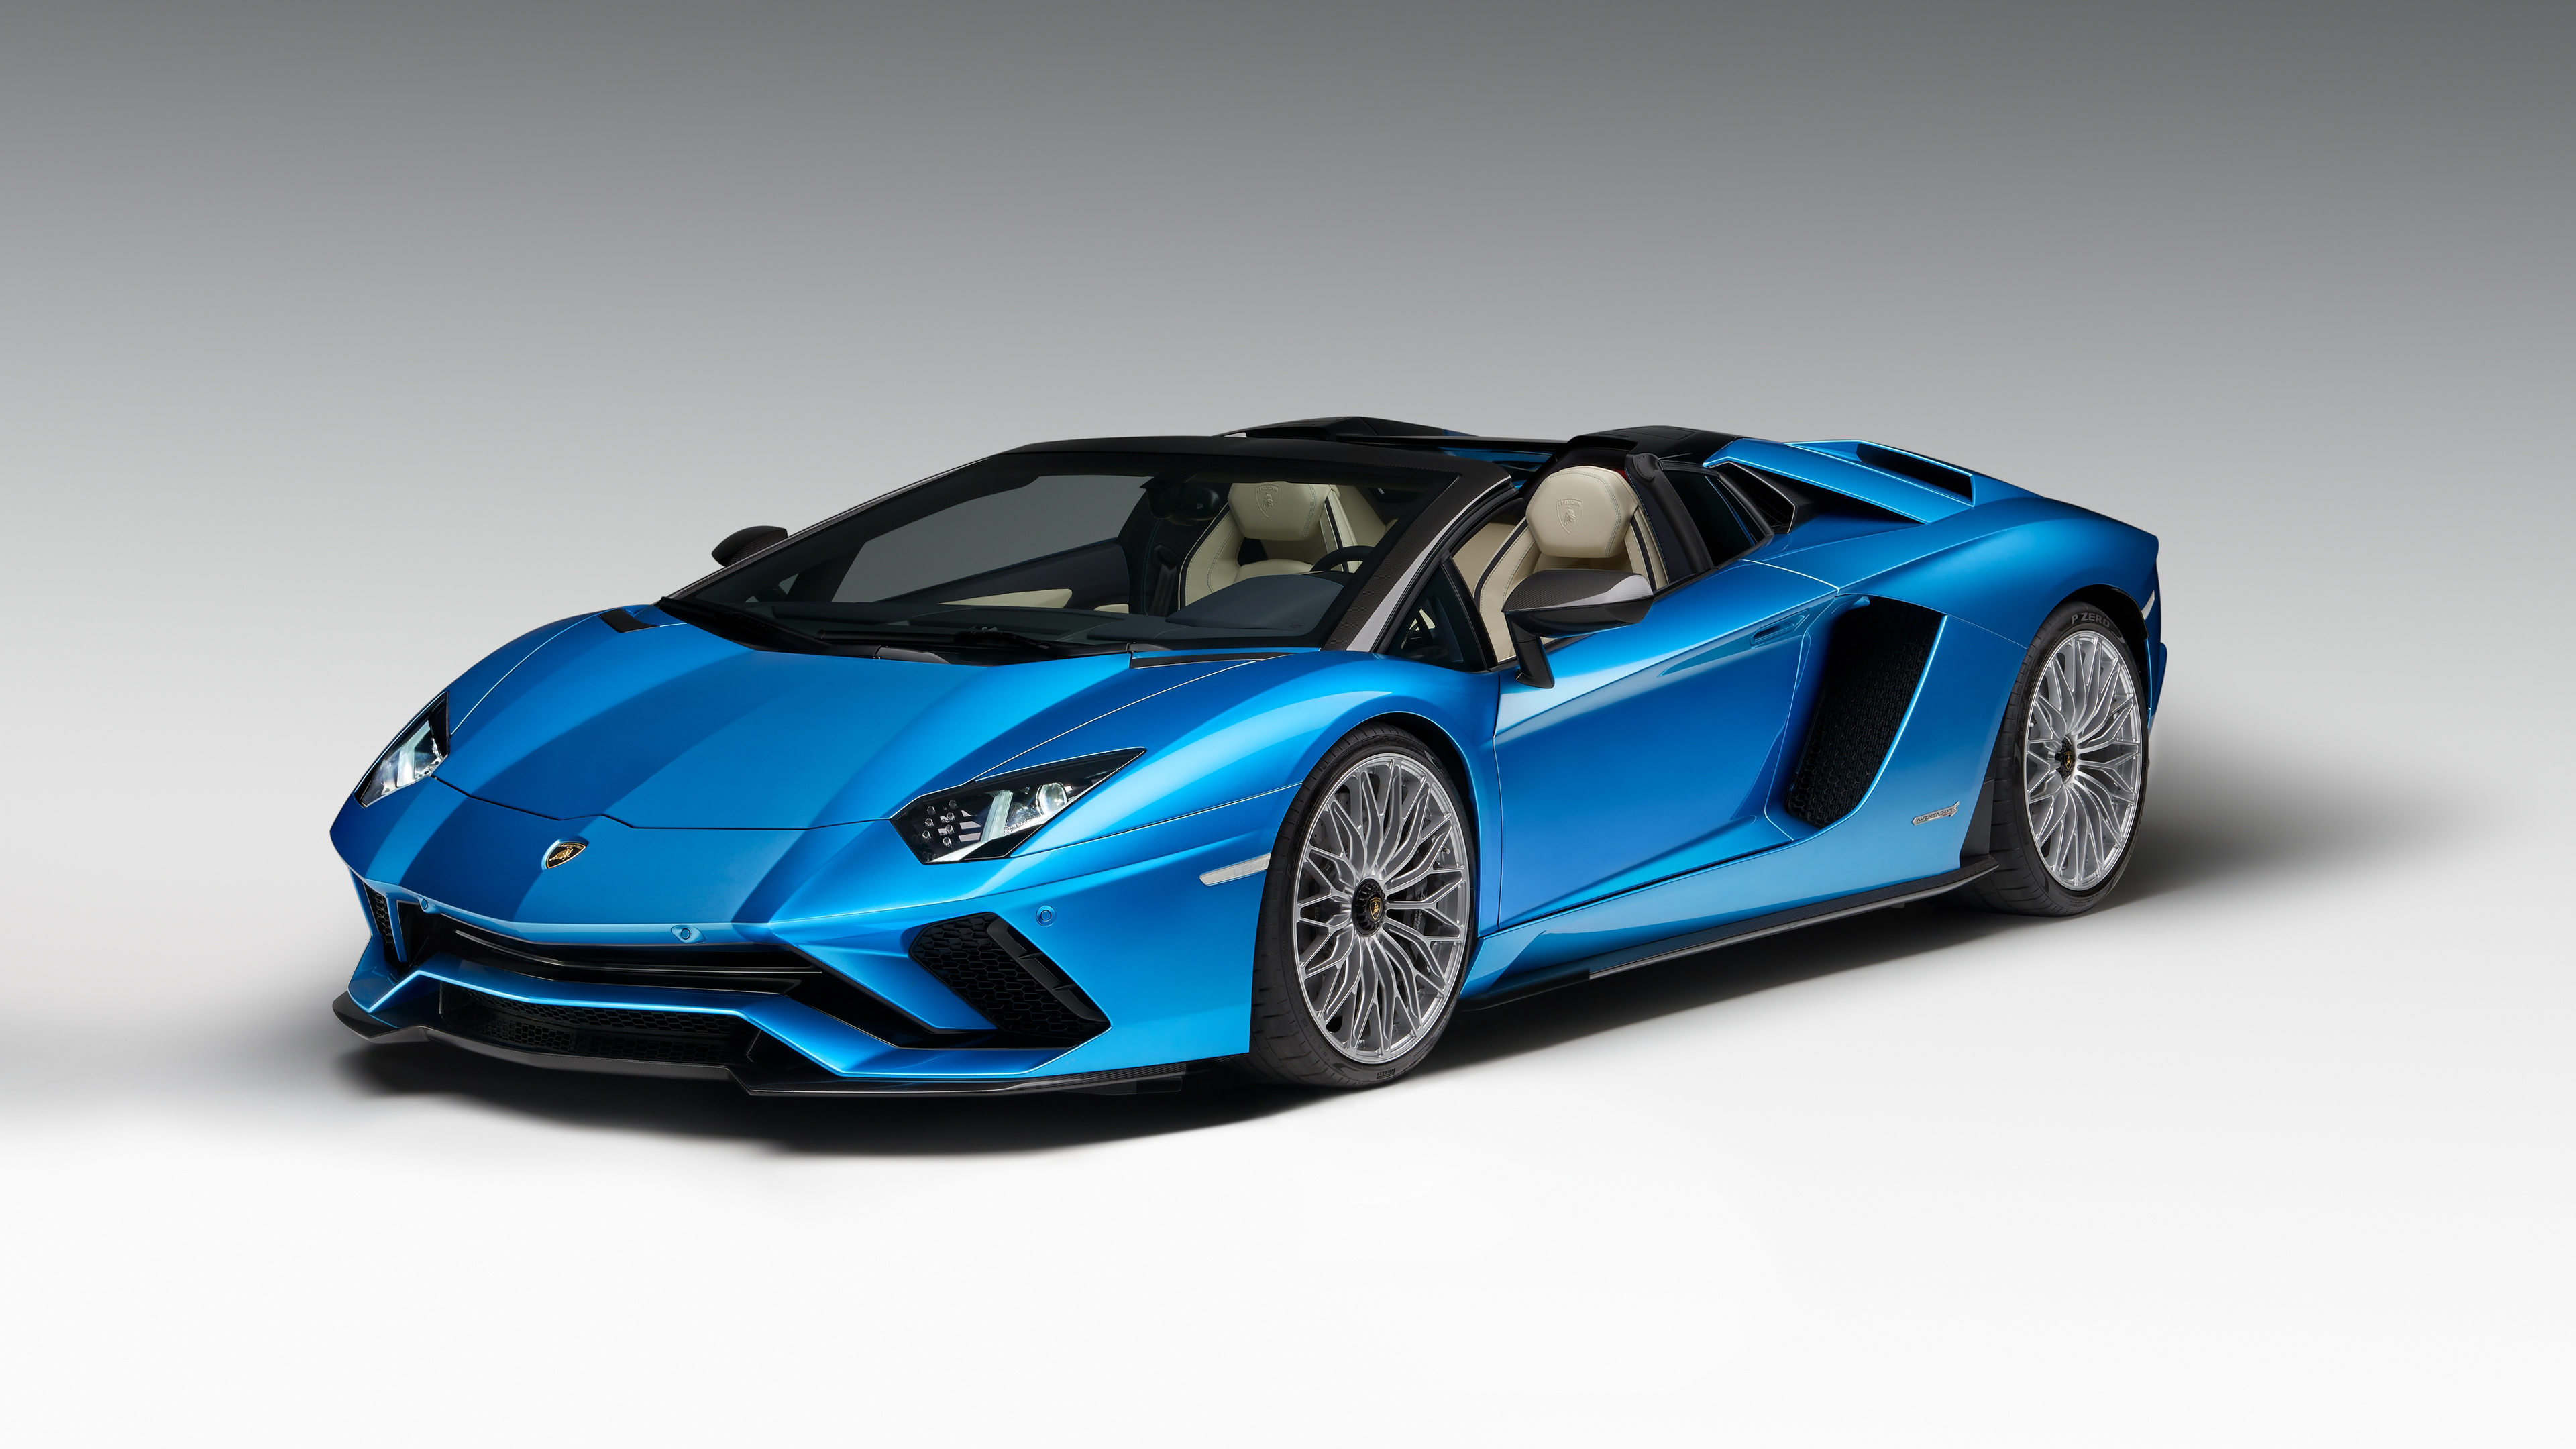 2018 Lamborghini Aventador S Roadster 4K Wallpaper HD Car 3840x2160